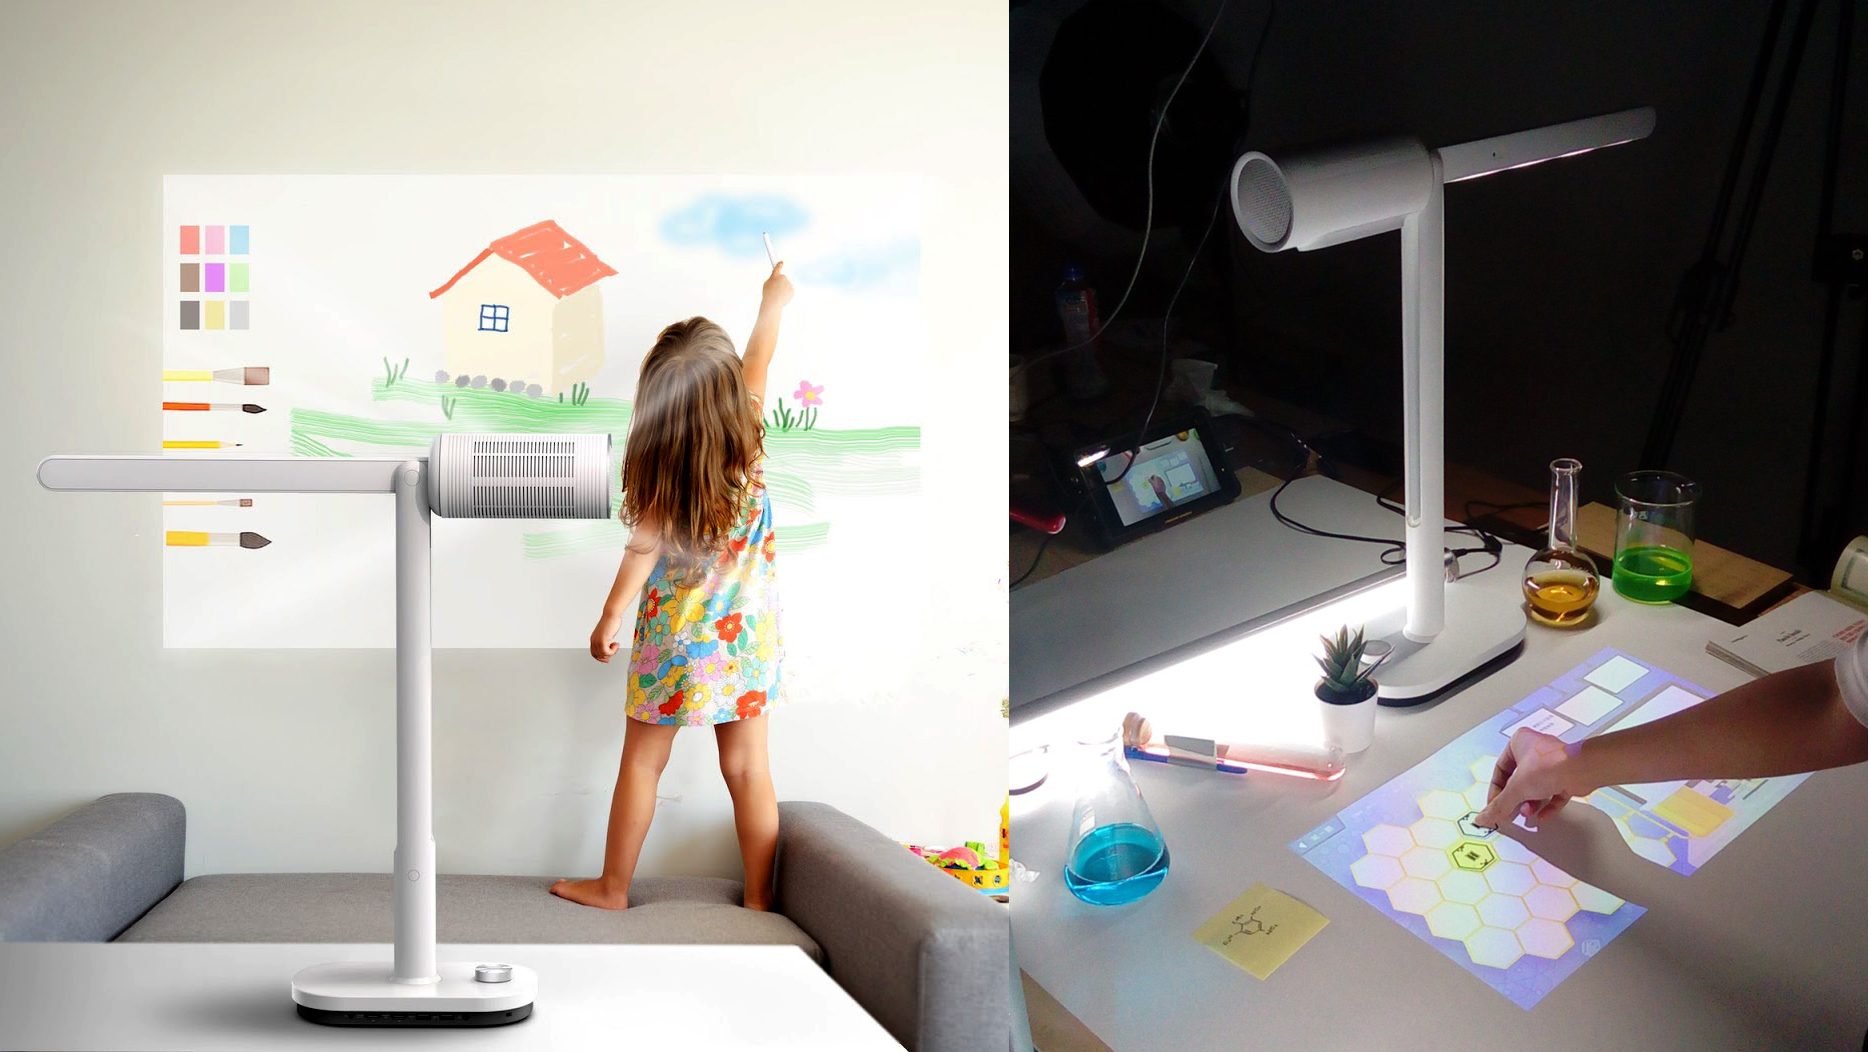 Lumi lamp containing computer and projector could be a form factor of the future